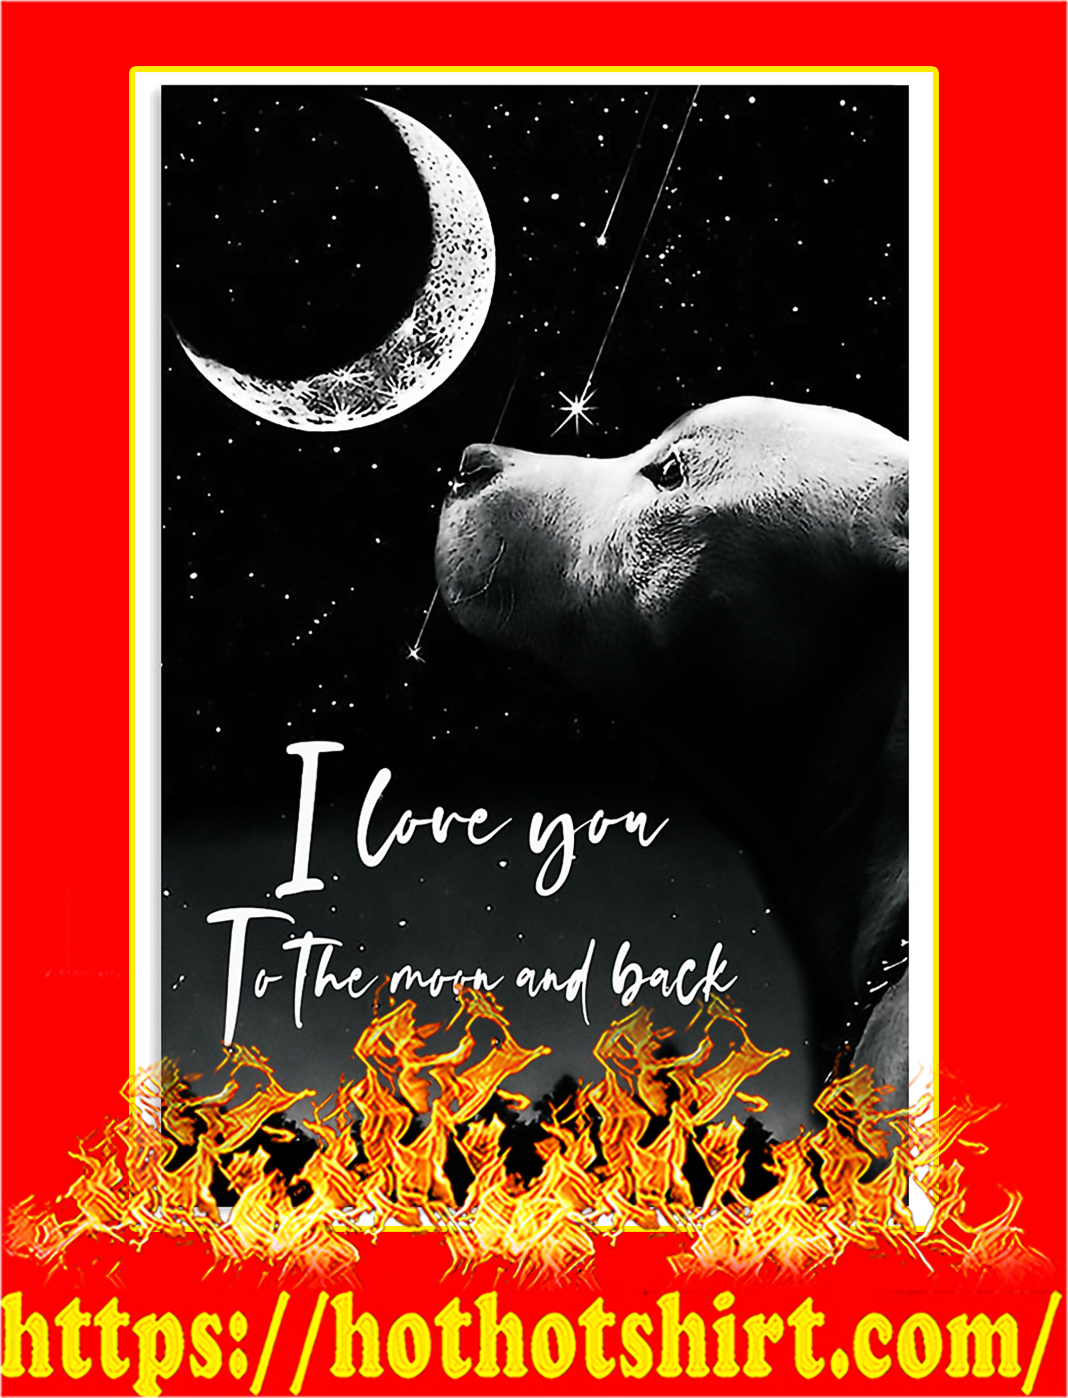 Pitbull i love you to the moon and back poster - A2